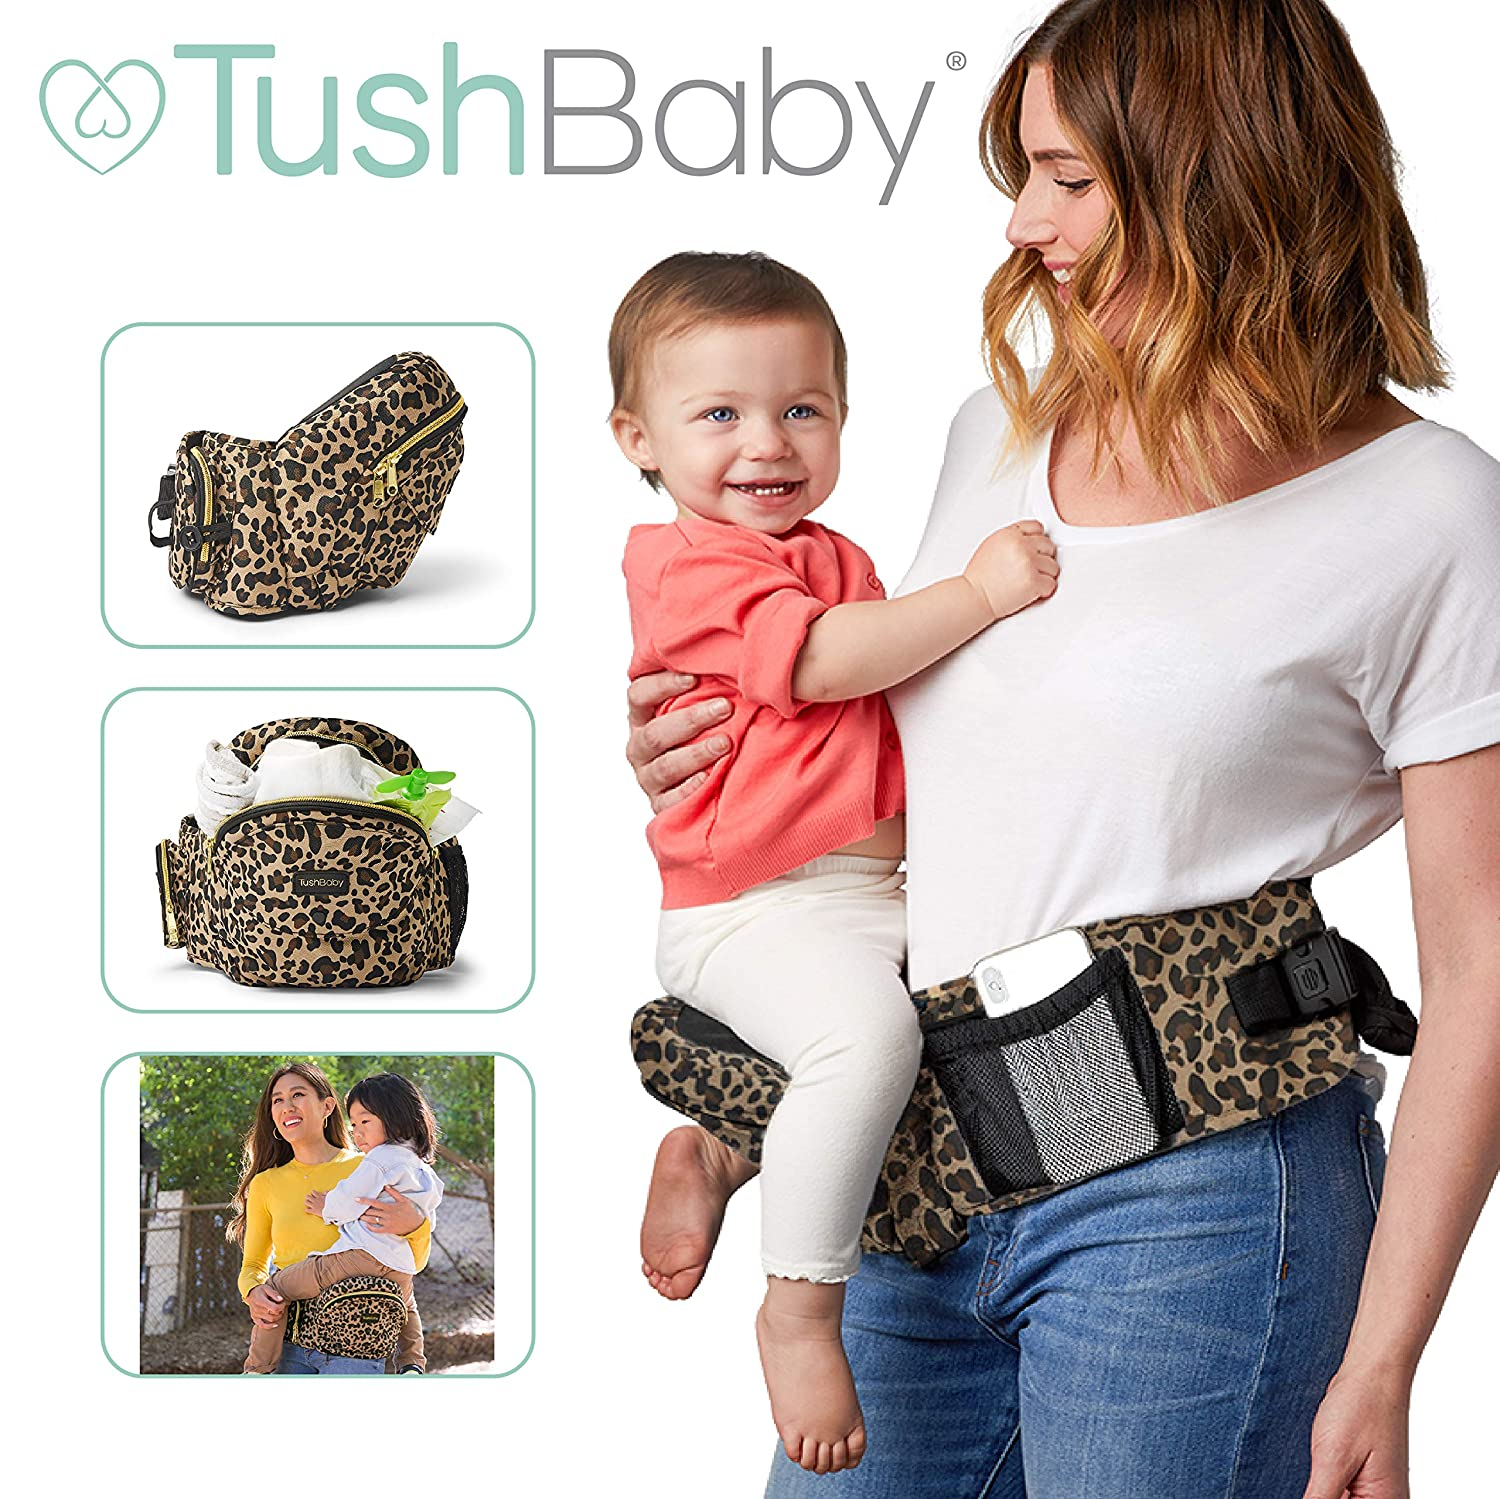 Black and Gold TushBaby The Only Safety Certified Hip Seat Baby Carrier As Seen On Shark Tank Ergonomic Waist Carrier for Newborns Toddlers /& Children